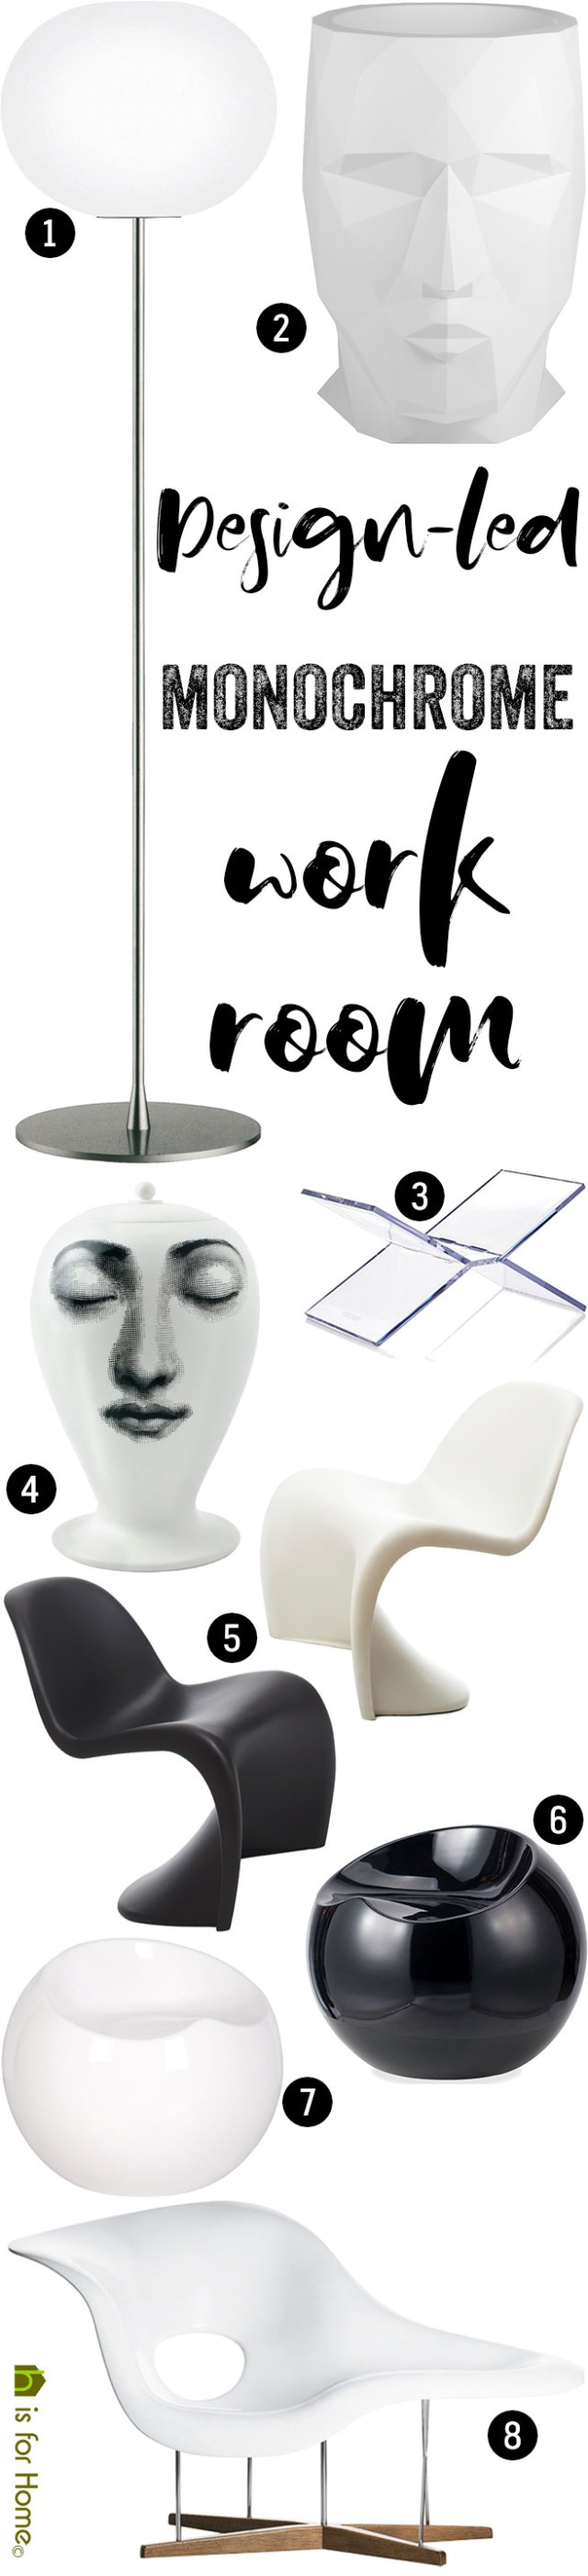 Get their look: Design-led monochrome work room | H is for Home